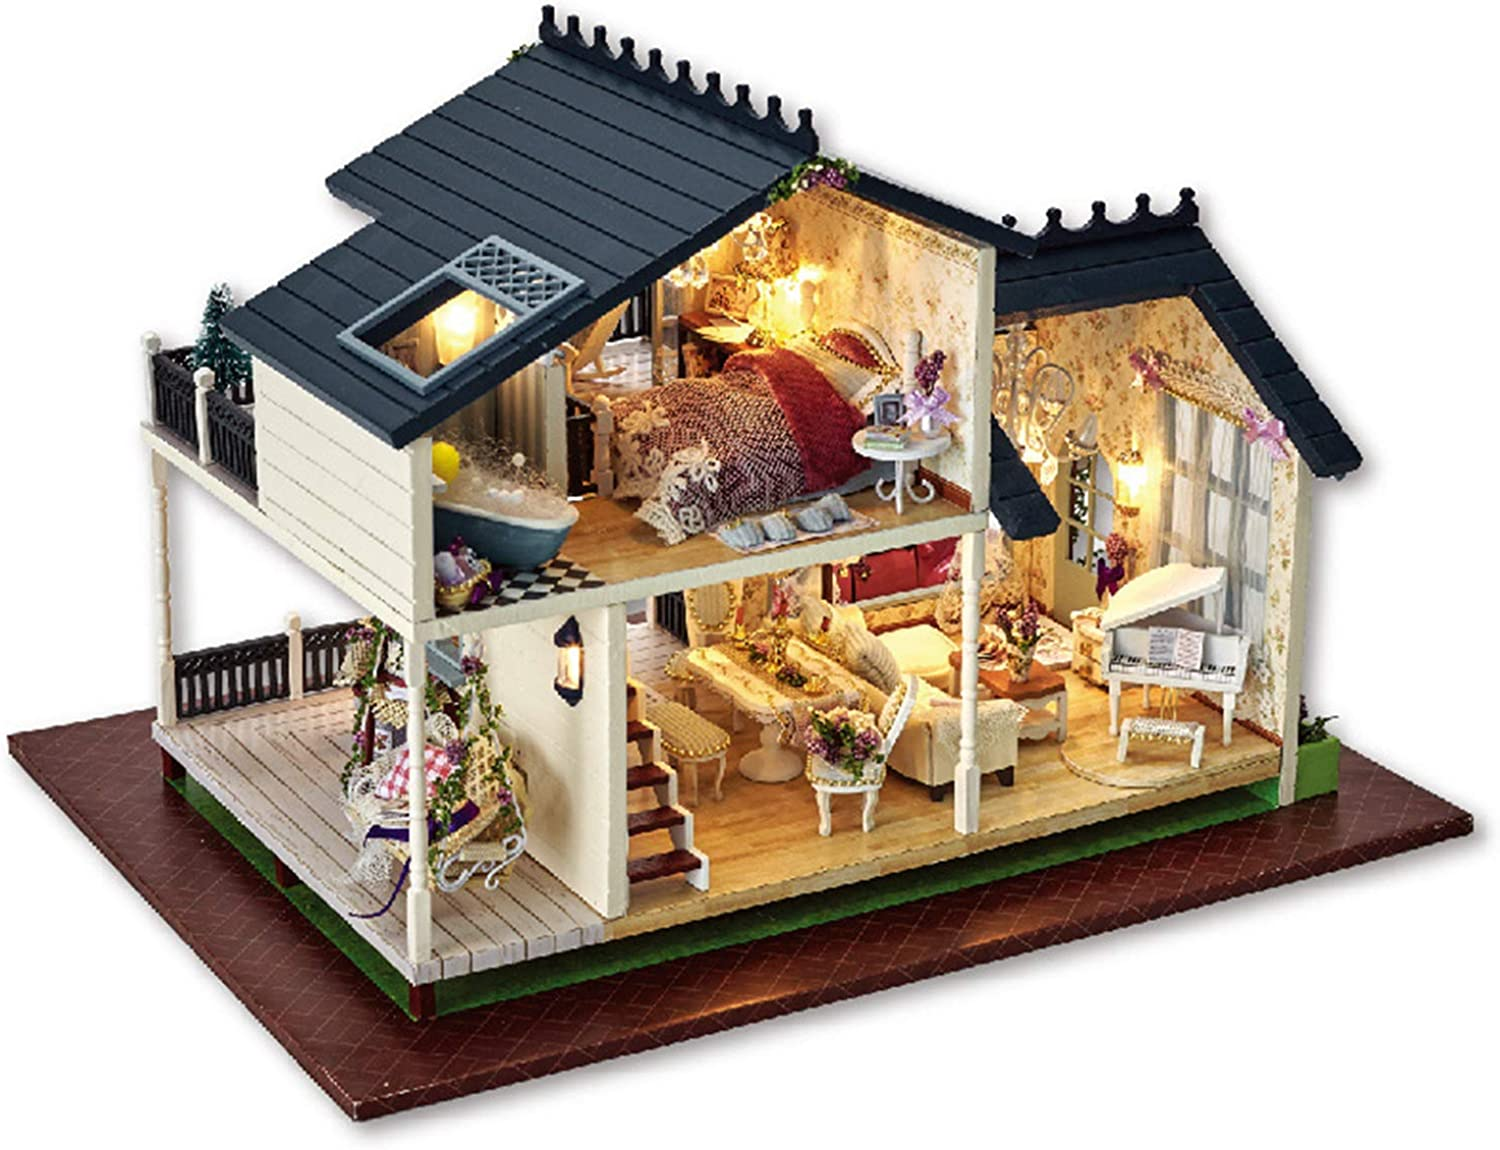 XCXDX DIY Wooden Assembled Toys, Twostory Cottage Doll House, Music Box With Led